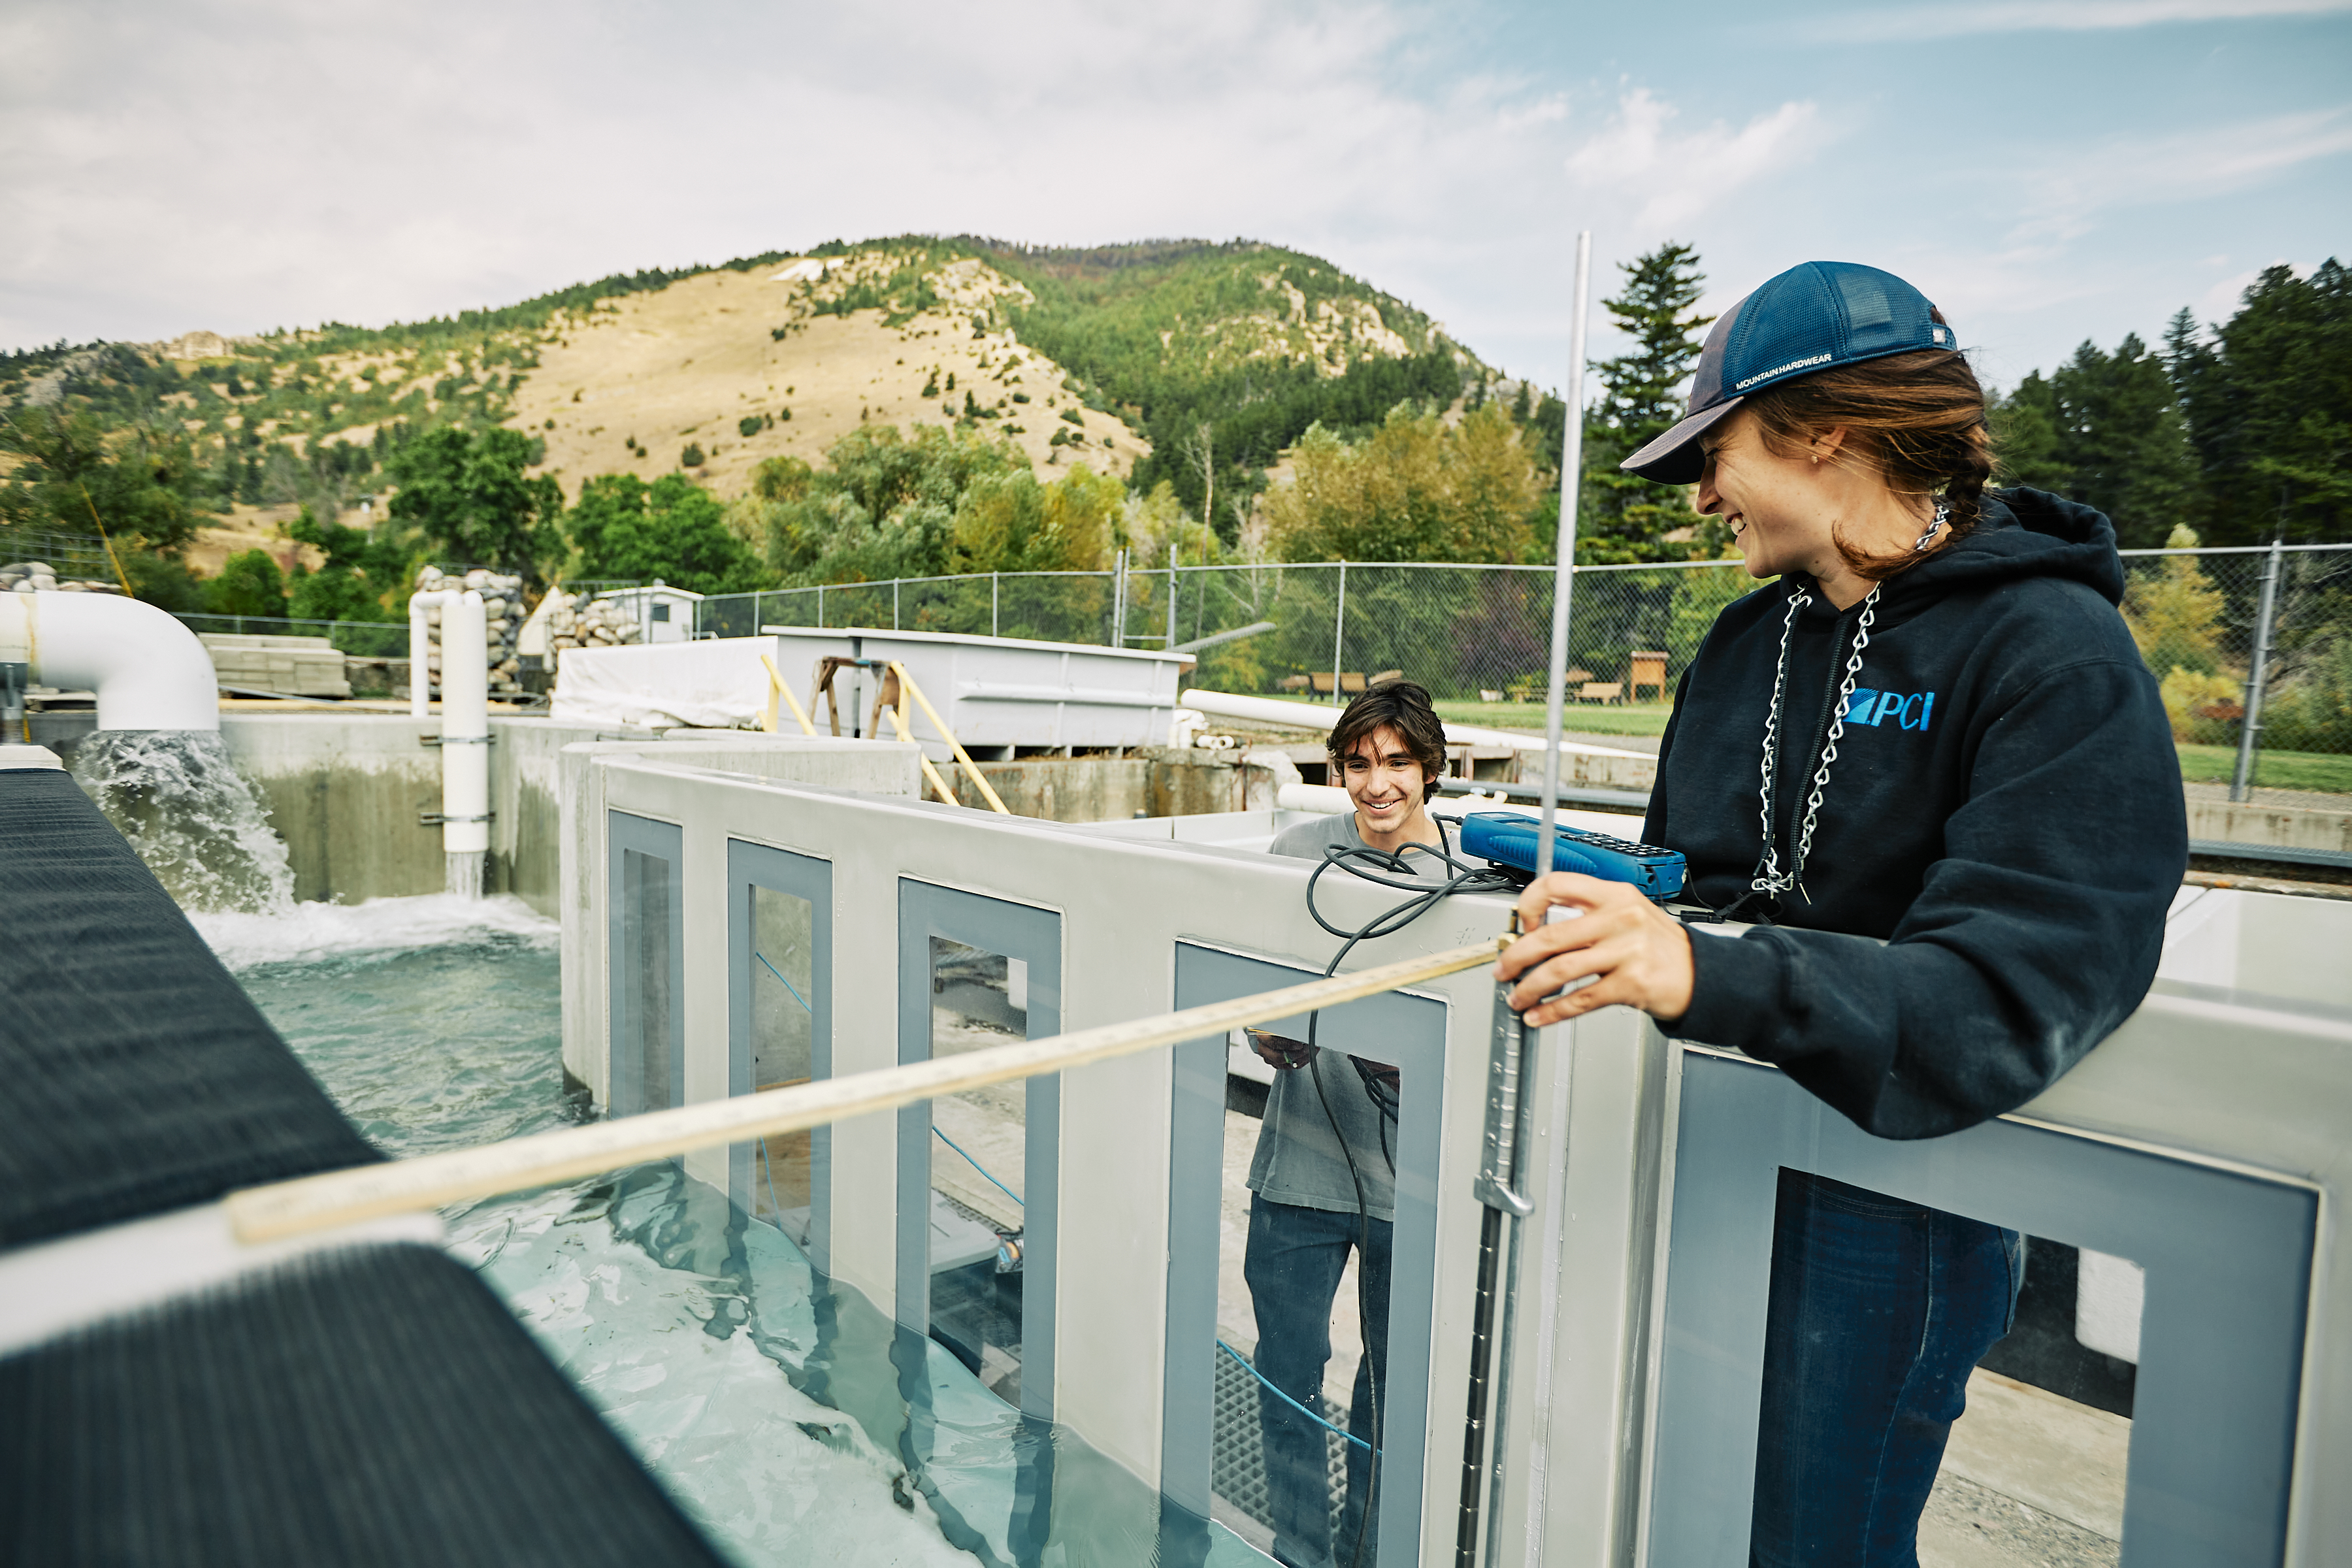 Megan and Anthony, students at Montana State University, take measurements at the outdoor flume at the Bozeman Fish Technology Center